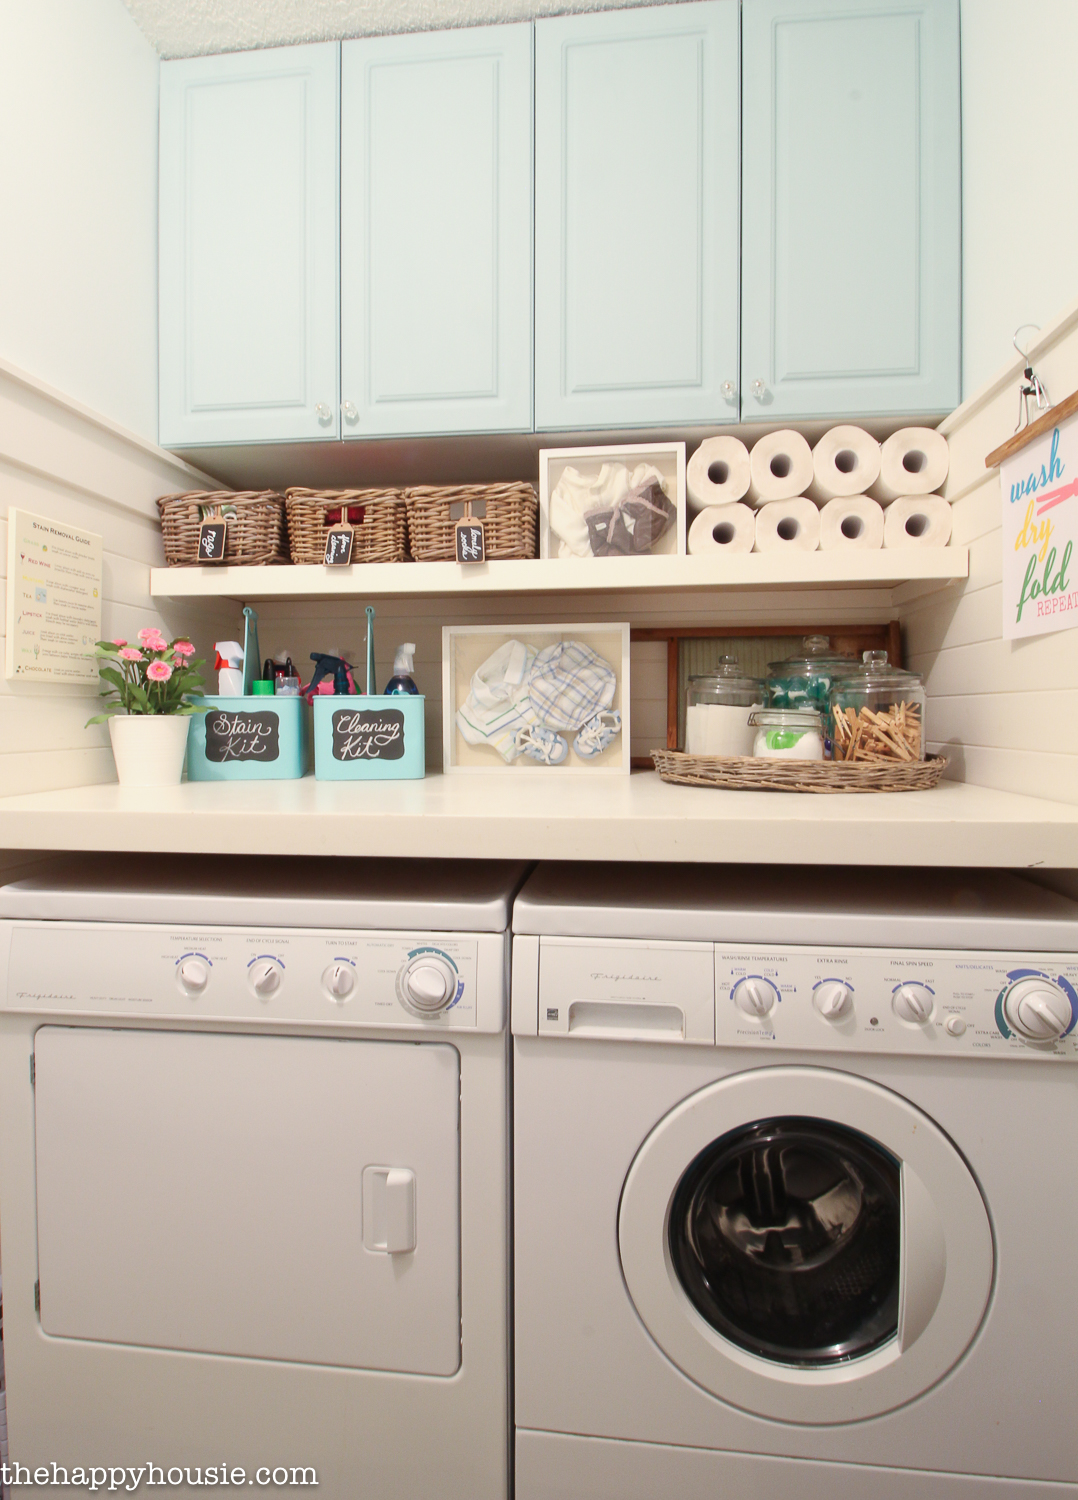 How to Completely Organize Your Laundry Room in Three Easy ... on Laundry Room Organization Ideas  id=83167